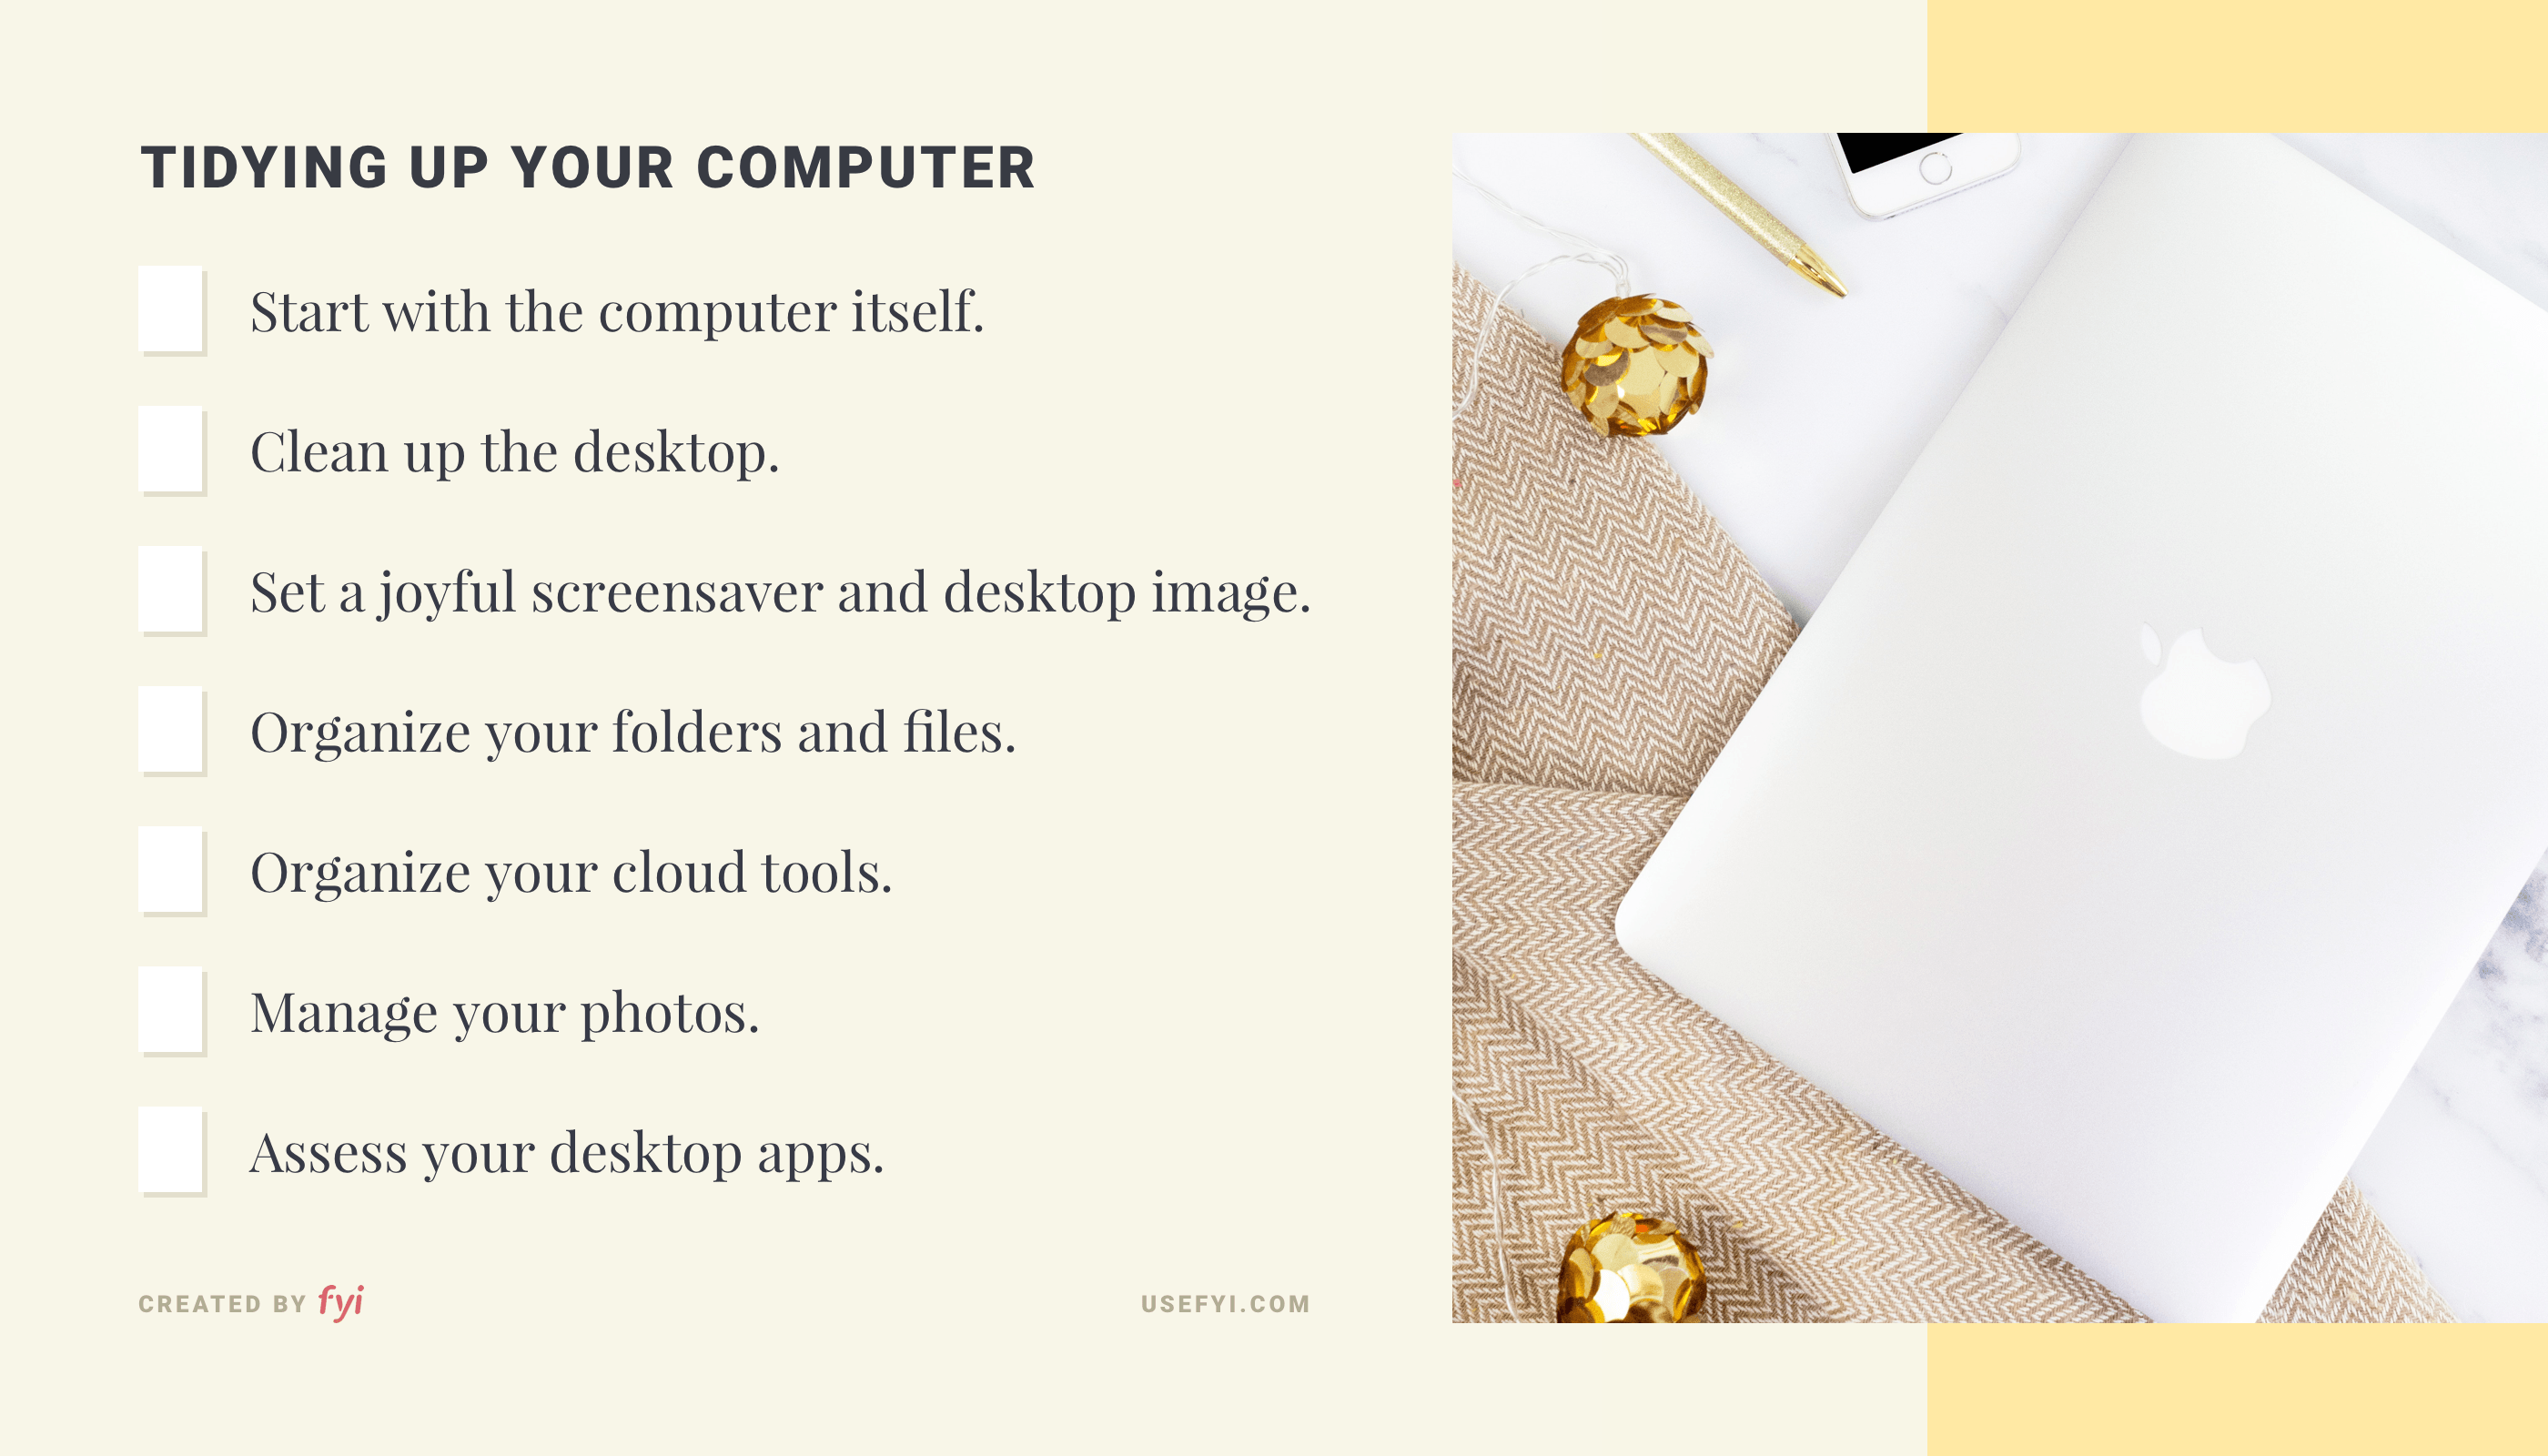 Tidying up your computer